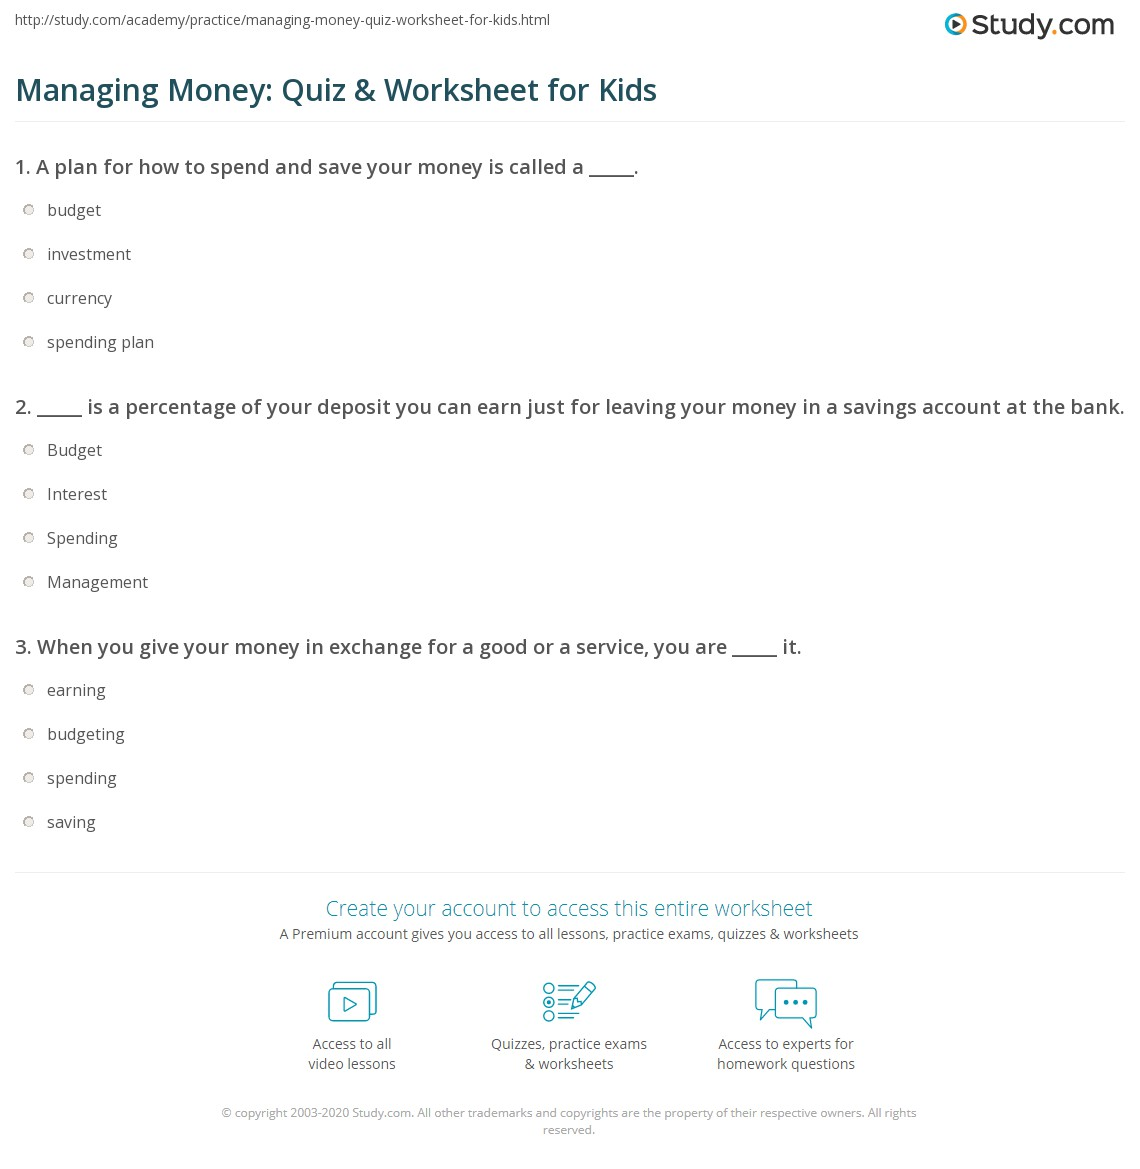 Worksheets Money Management Worksheets managing money quiz worksheet for kids study com print management lesson worksheet